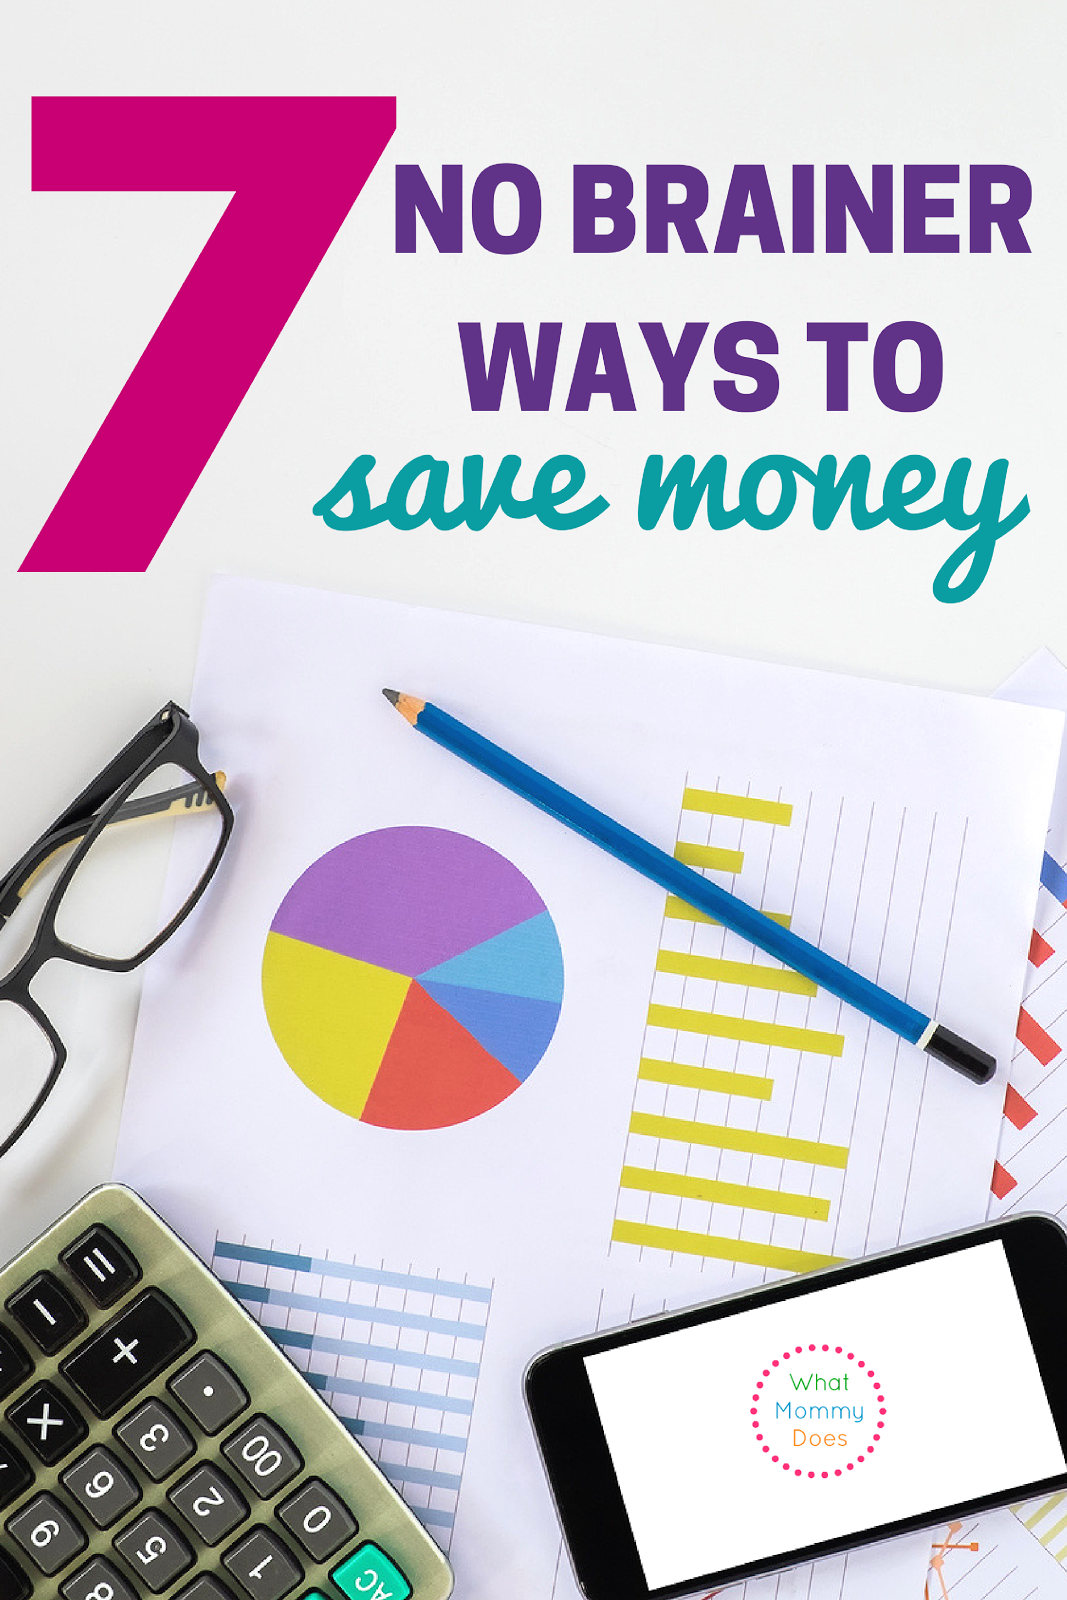 These super easy ways to save money don't require much thought. However, they are some of the best frugal living ideas I have seen!